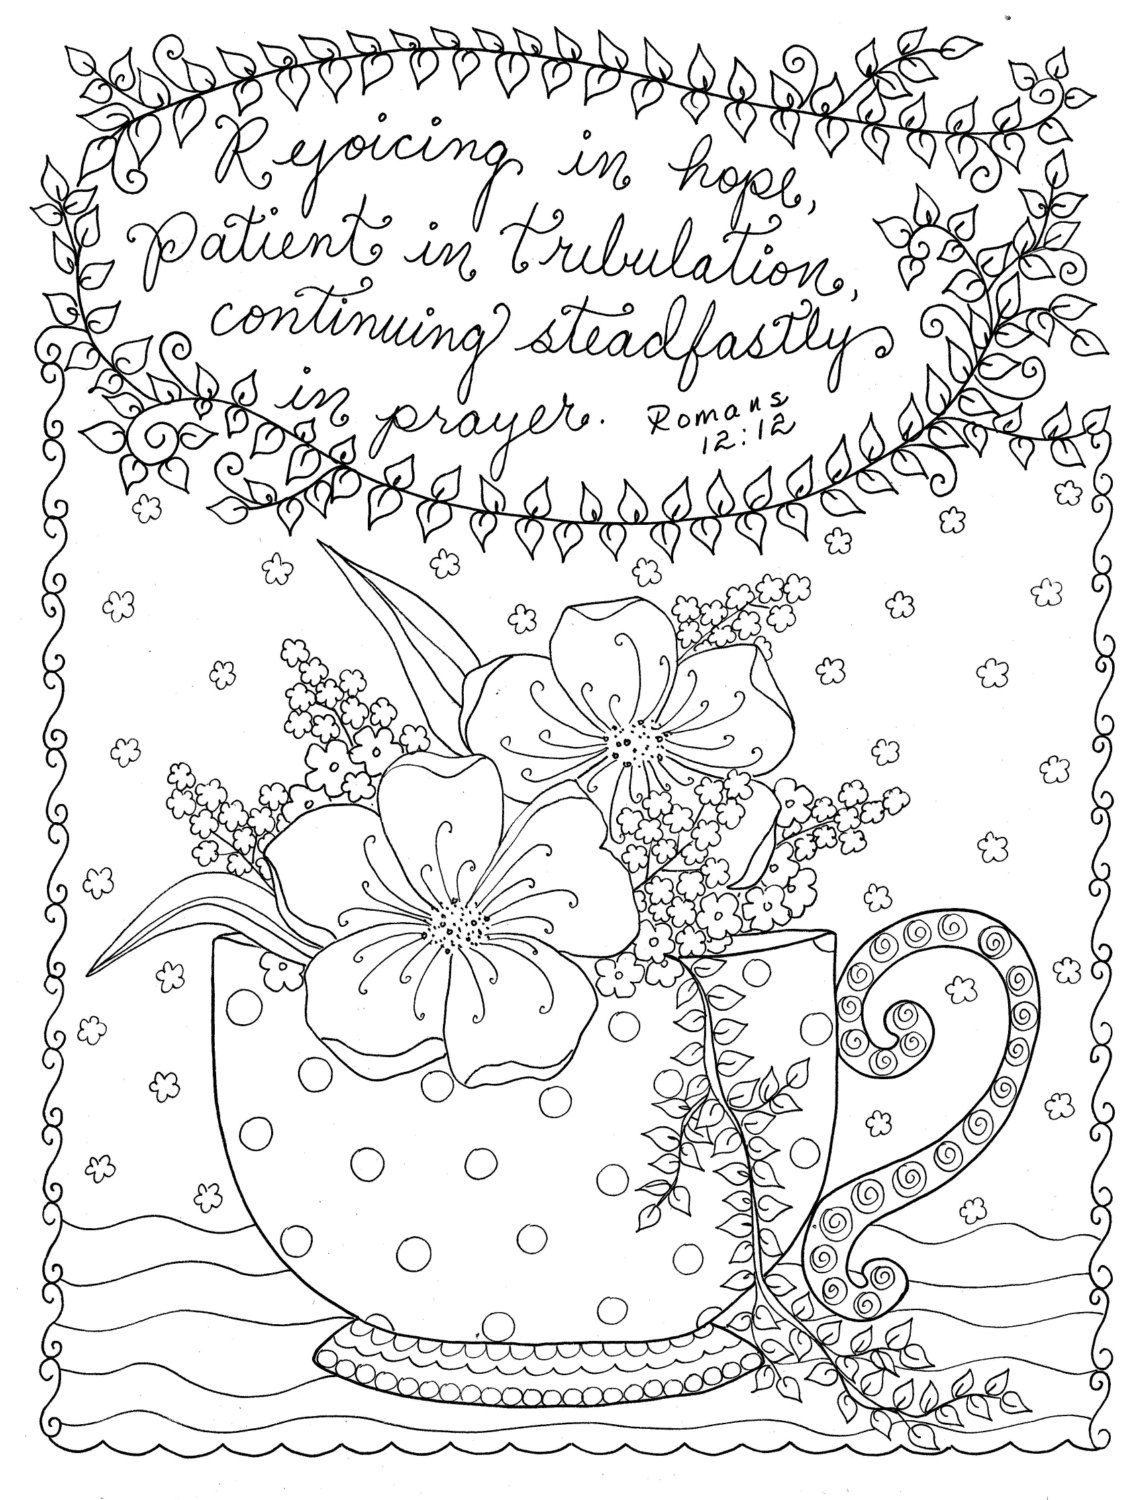 bible verse christian coloring pages free christian coloring pages for adults roundup bible bible verse coloring christian pages